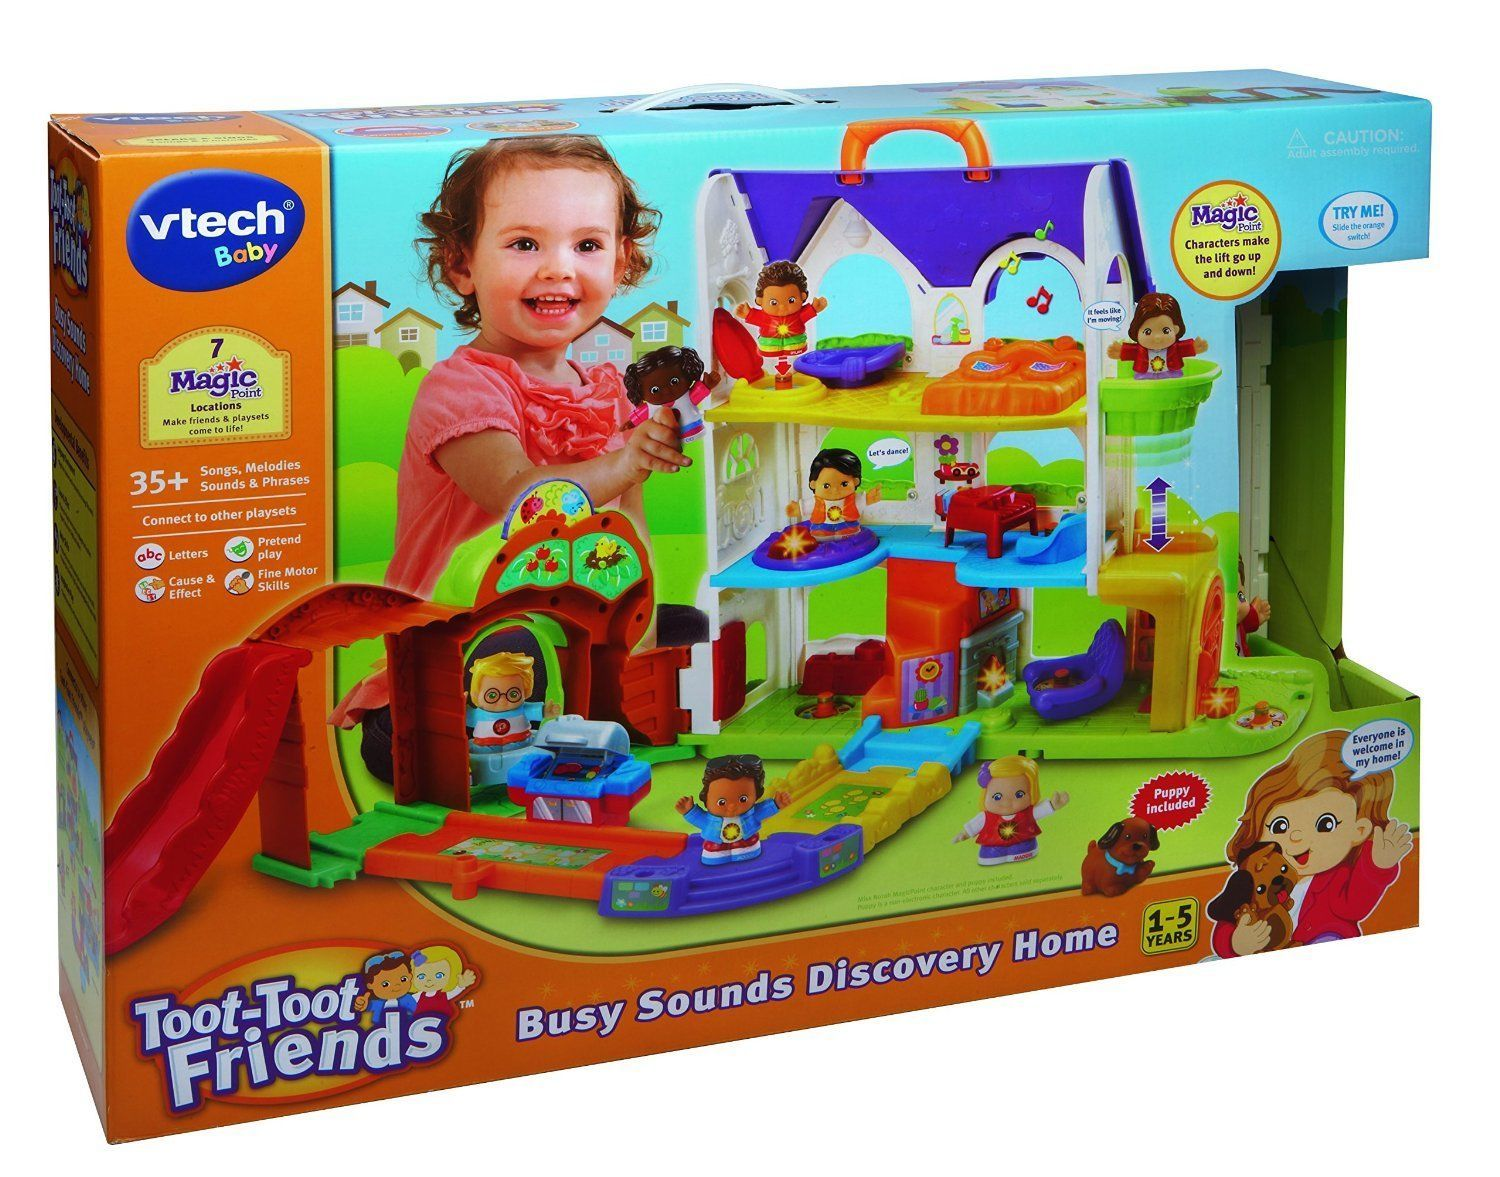 VTech Baby Toot Toot Friends Busy Sounds Discovery Home